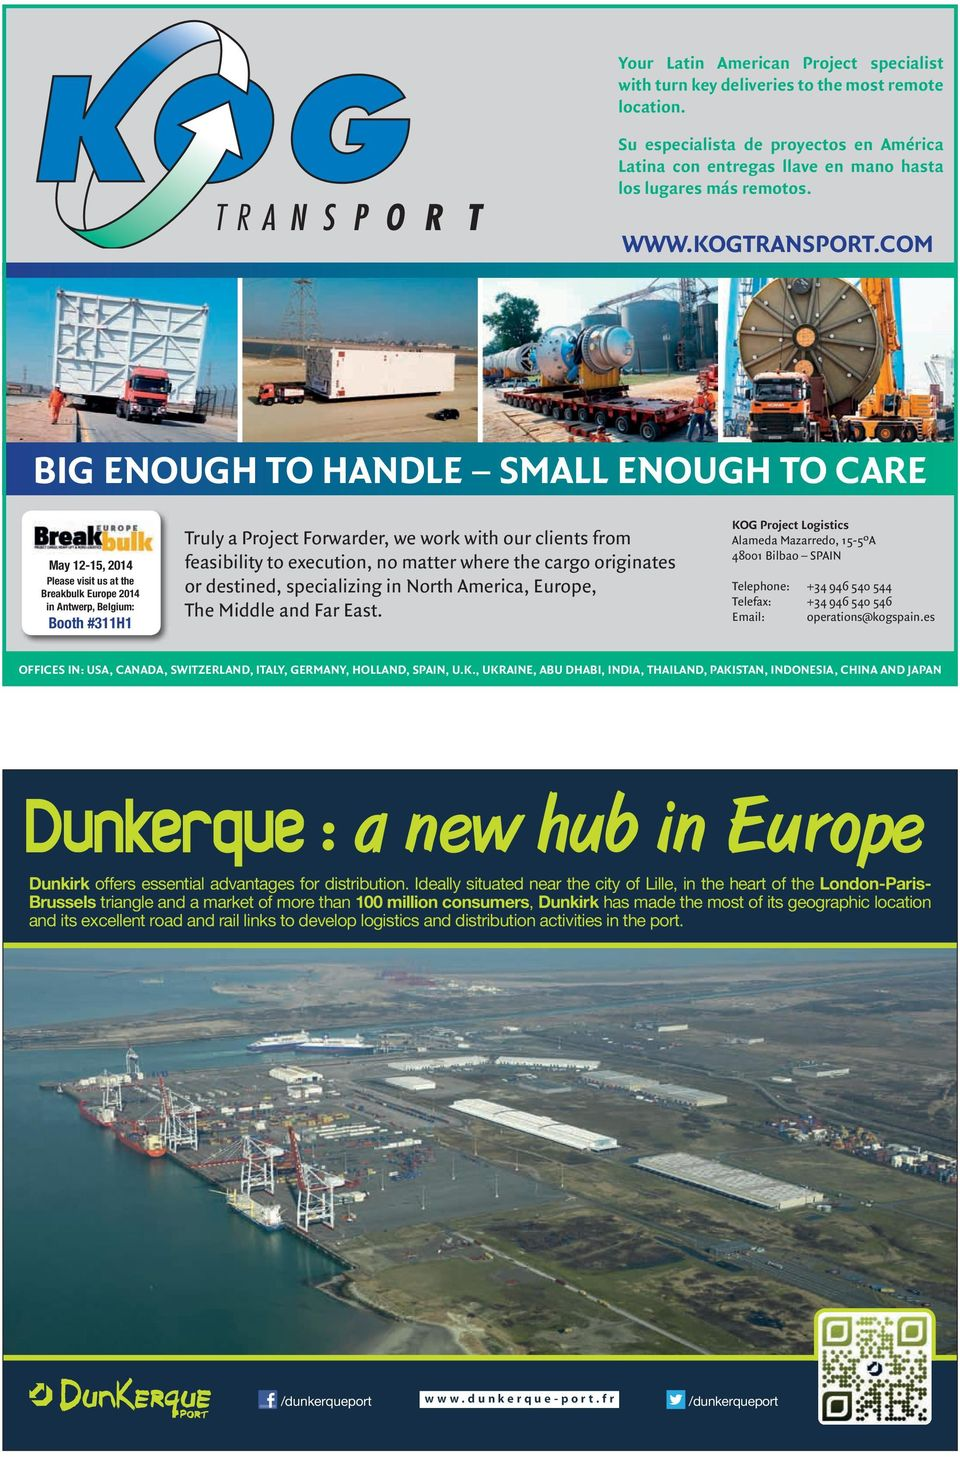 COM BIG ENOUGH TO HANDLE SMALL ENOUGH TO CARE May 12-15, 2014 Please visit us at the Breakbulk Europe 2014 in Antwerp, Belgium: Booth #311H1 Truly a Project Forwarder, we work with our clients from